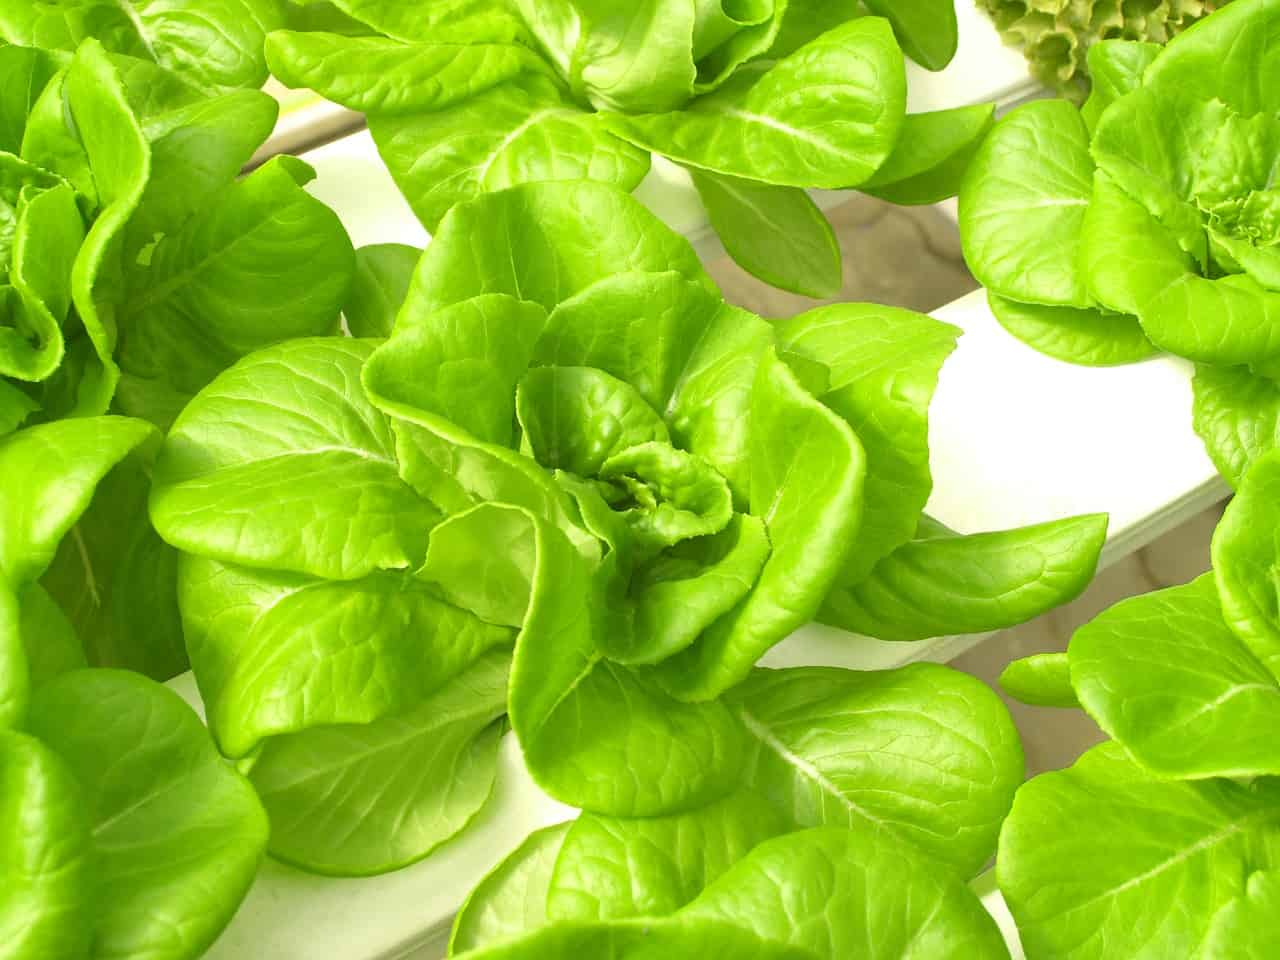 close-up photo of green leafy product of hydroponic system